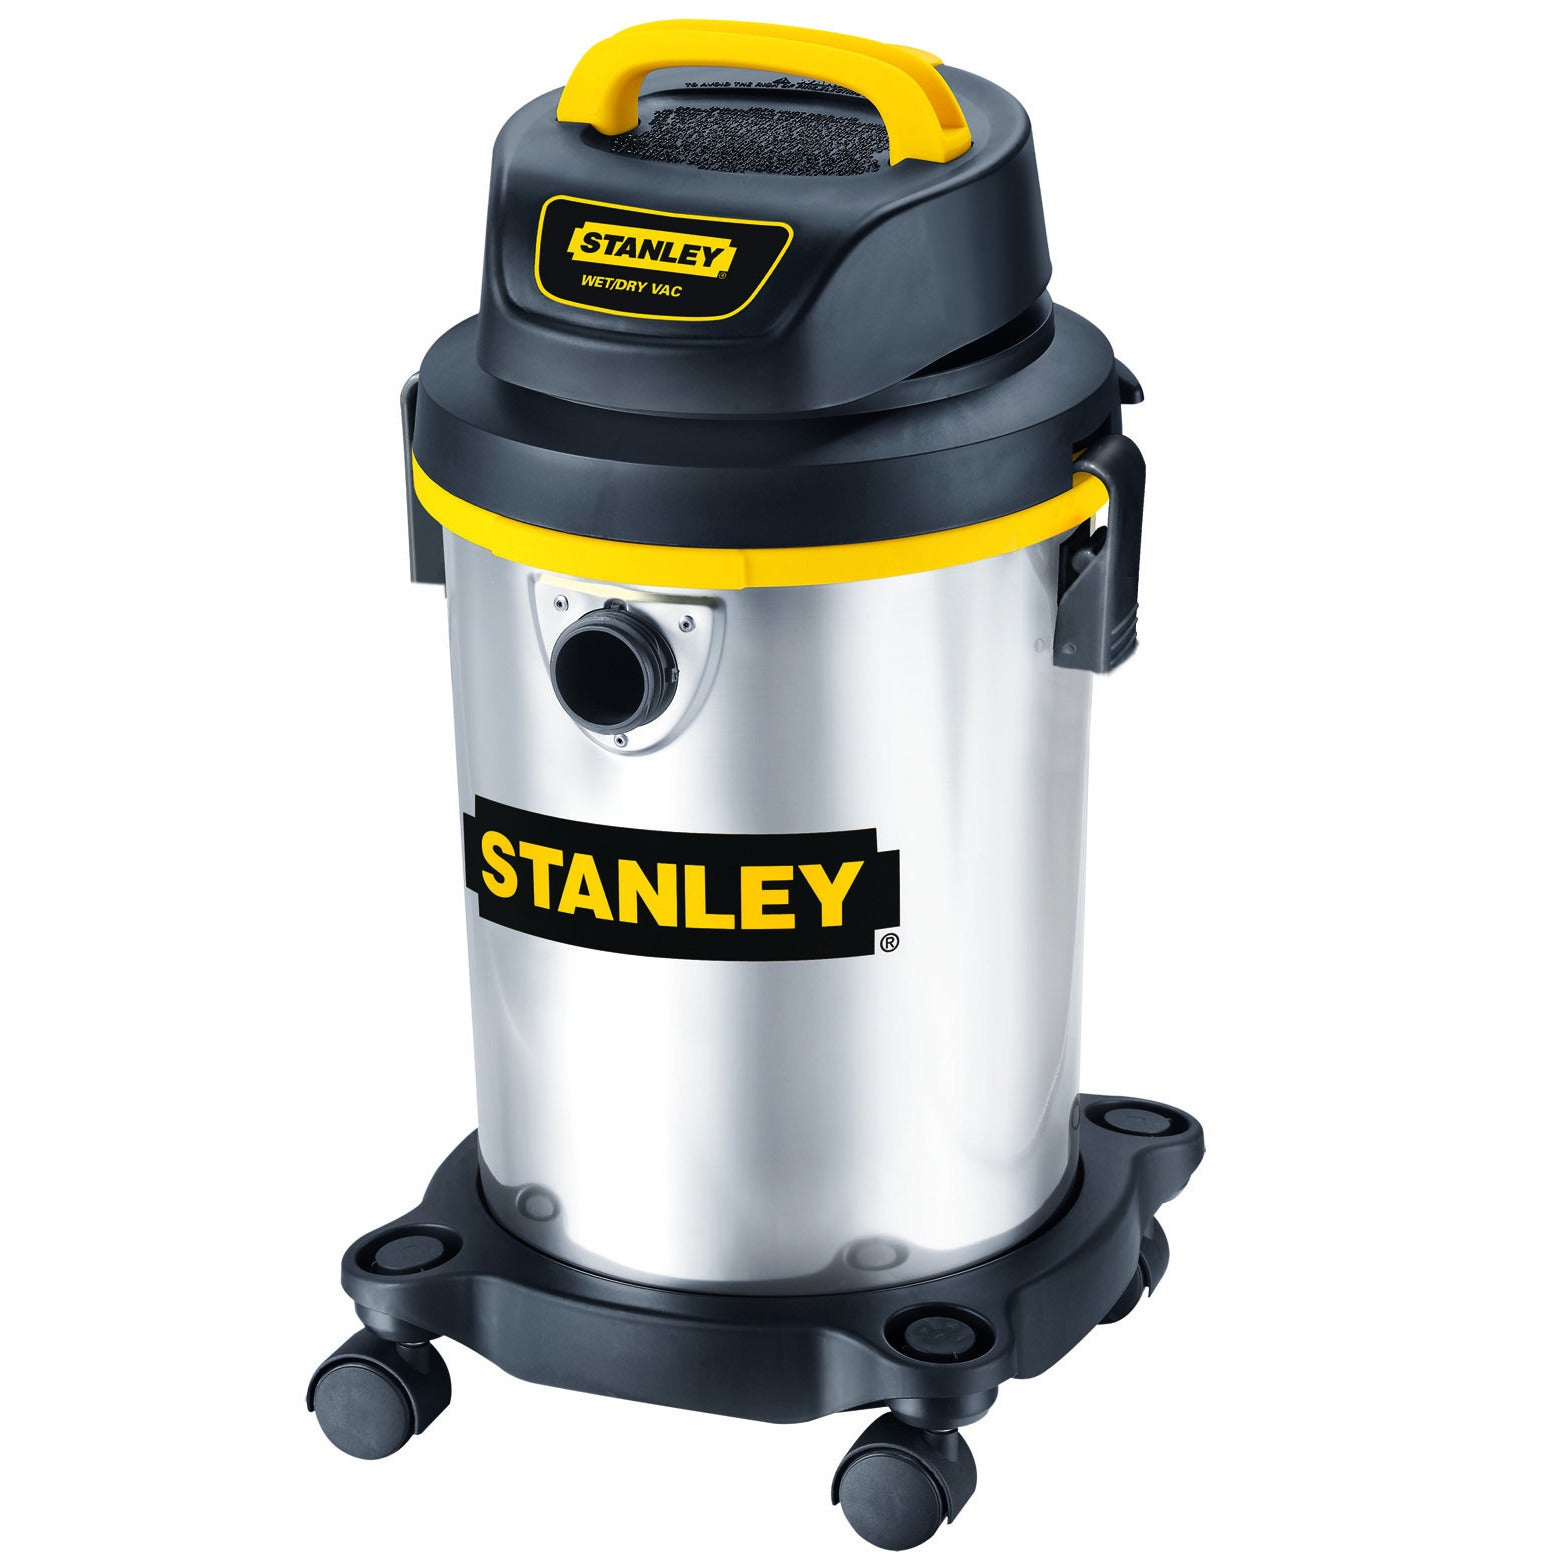 Stanley Wet/ Dry 4 Gallon Stainless Steel Vacuum at Sears.com